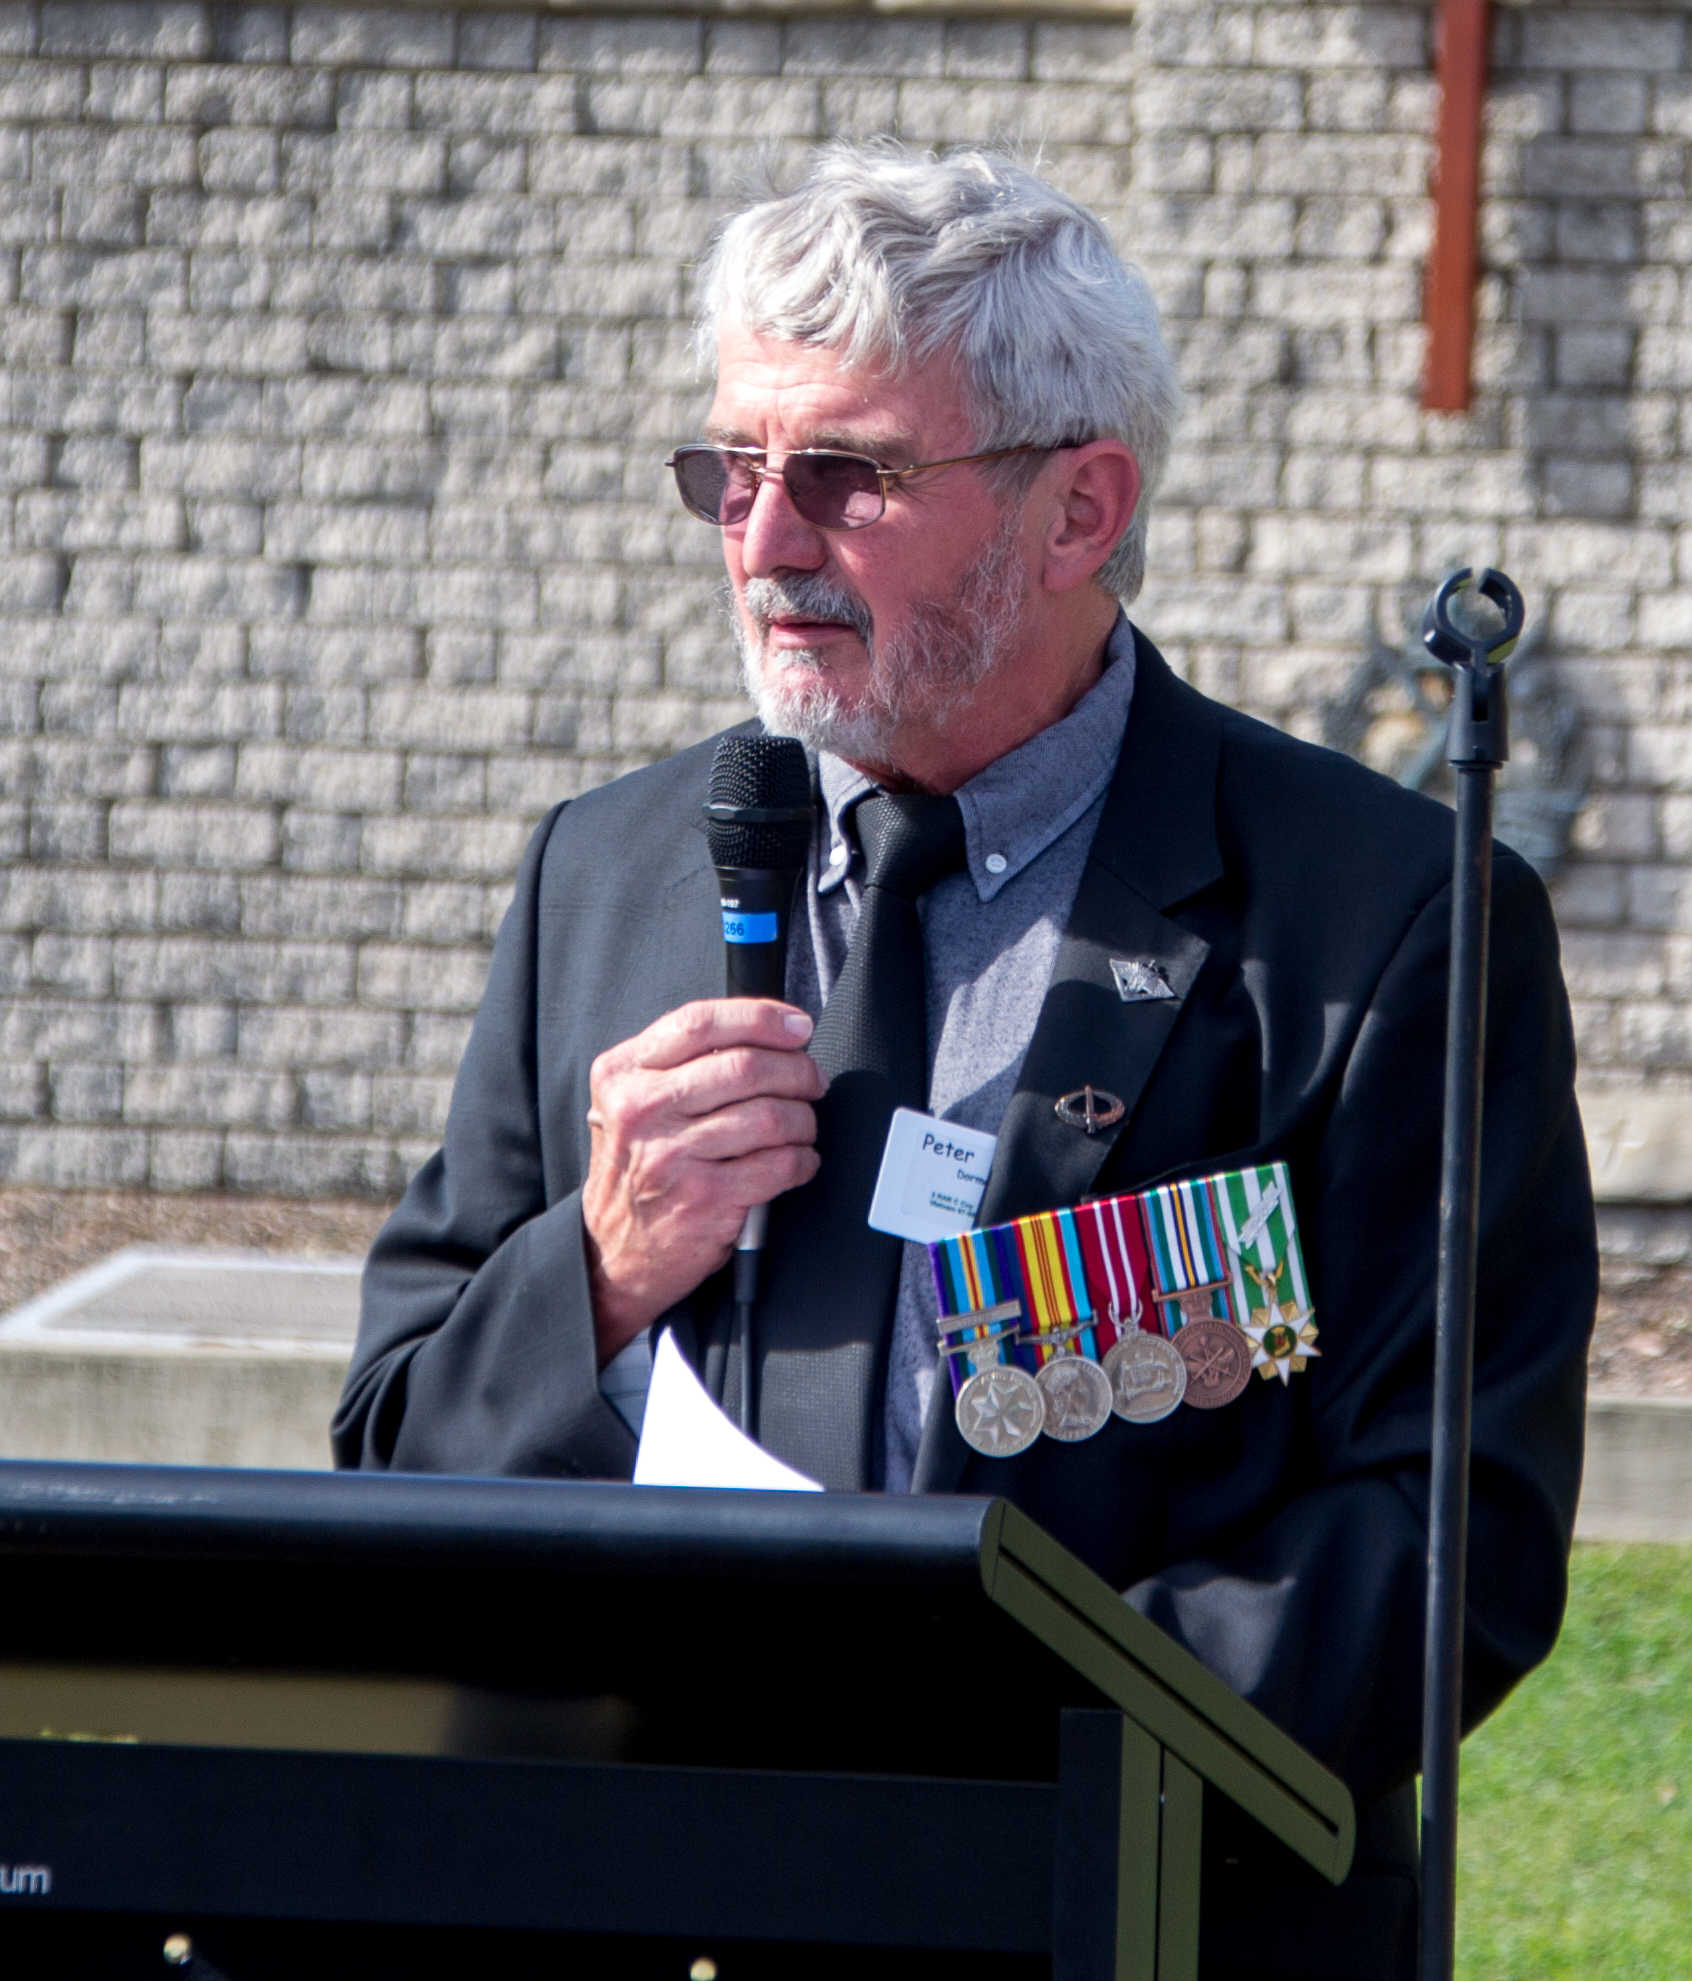 Peter Dorman leading the Memorial Service for the Battle of Kapyong